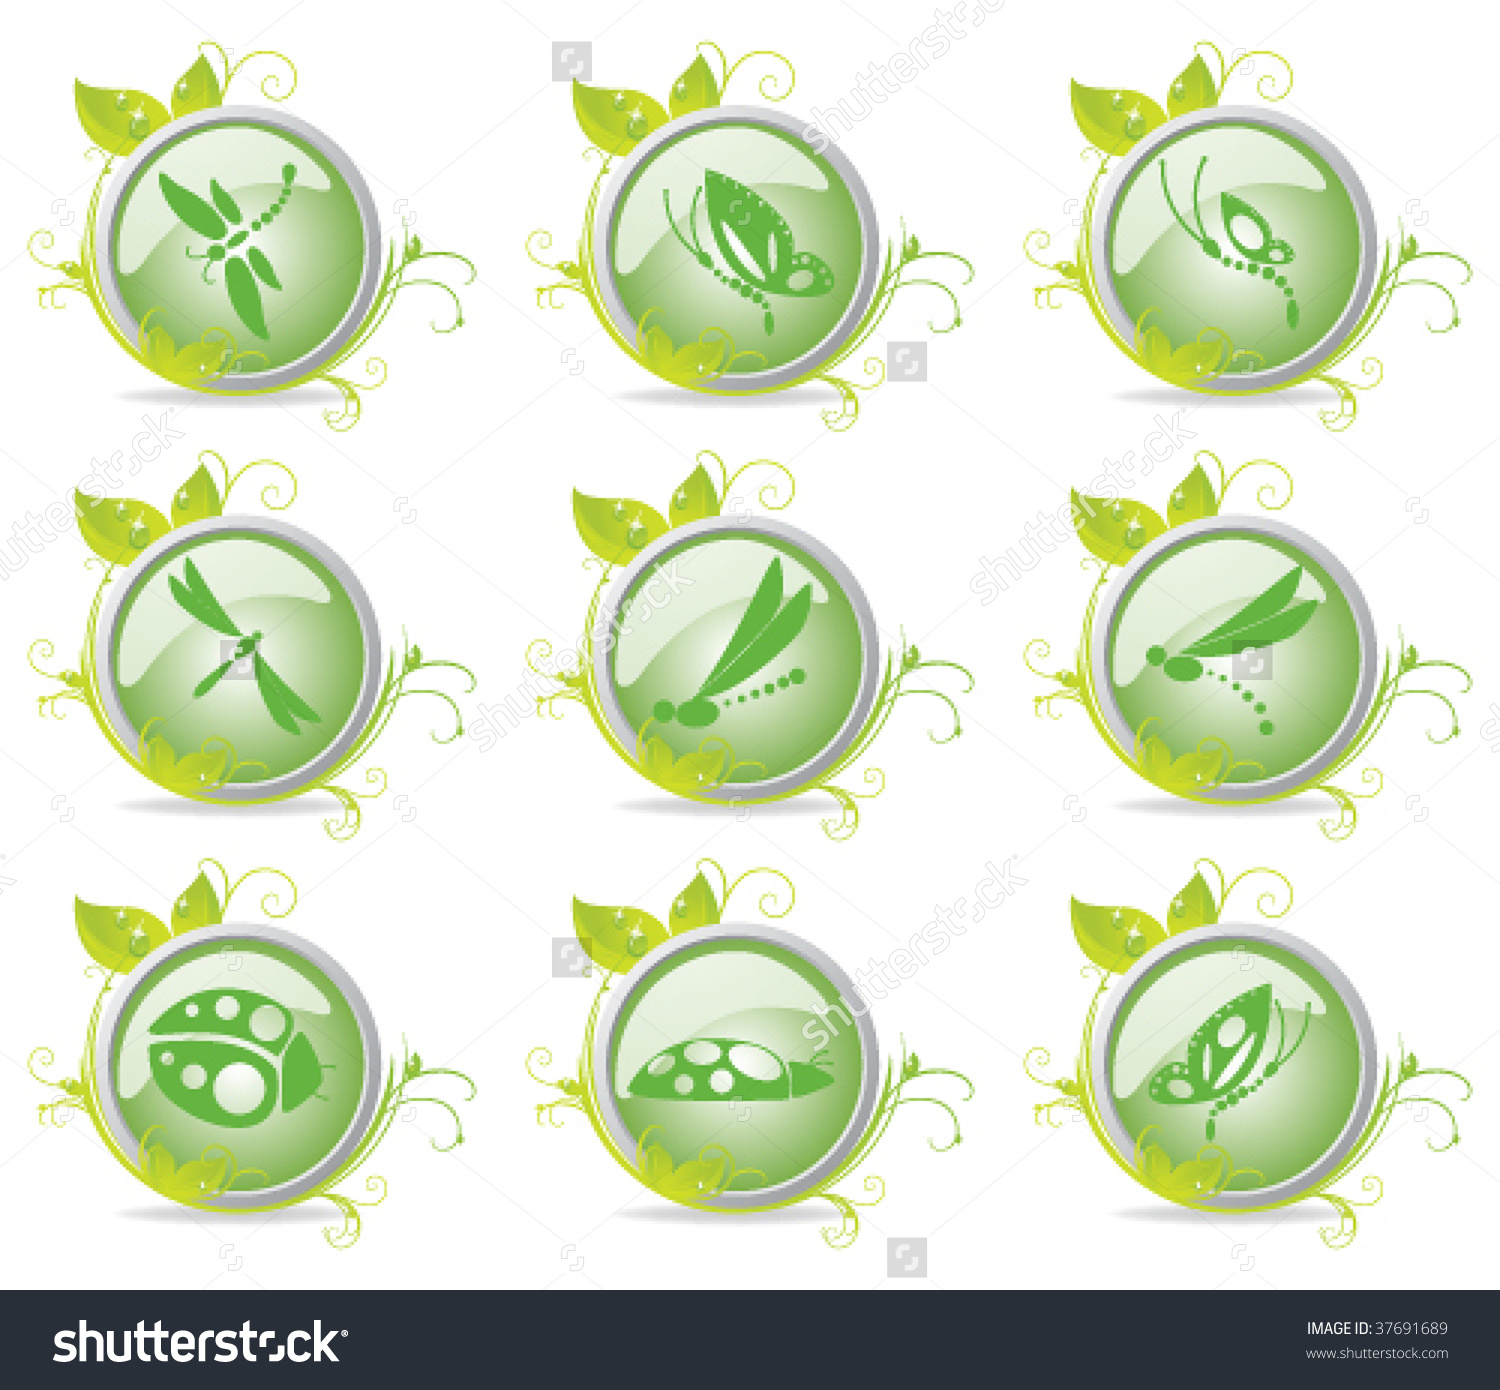 Nine Ecological Insect Icons Surrounded By Dewdrop Leaves And Airy.